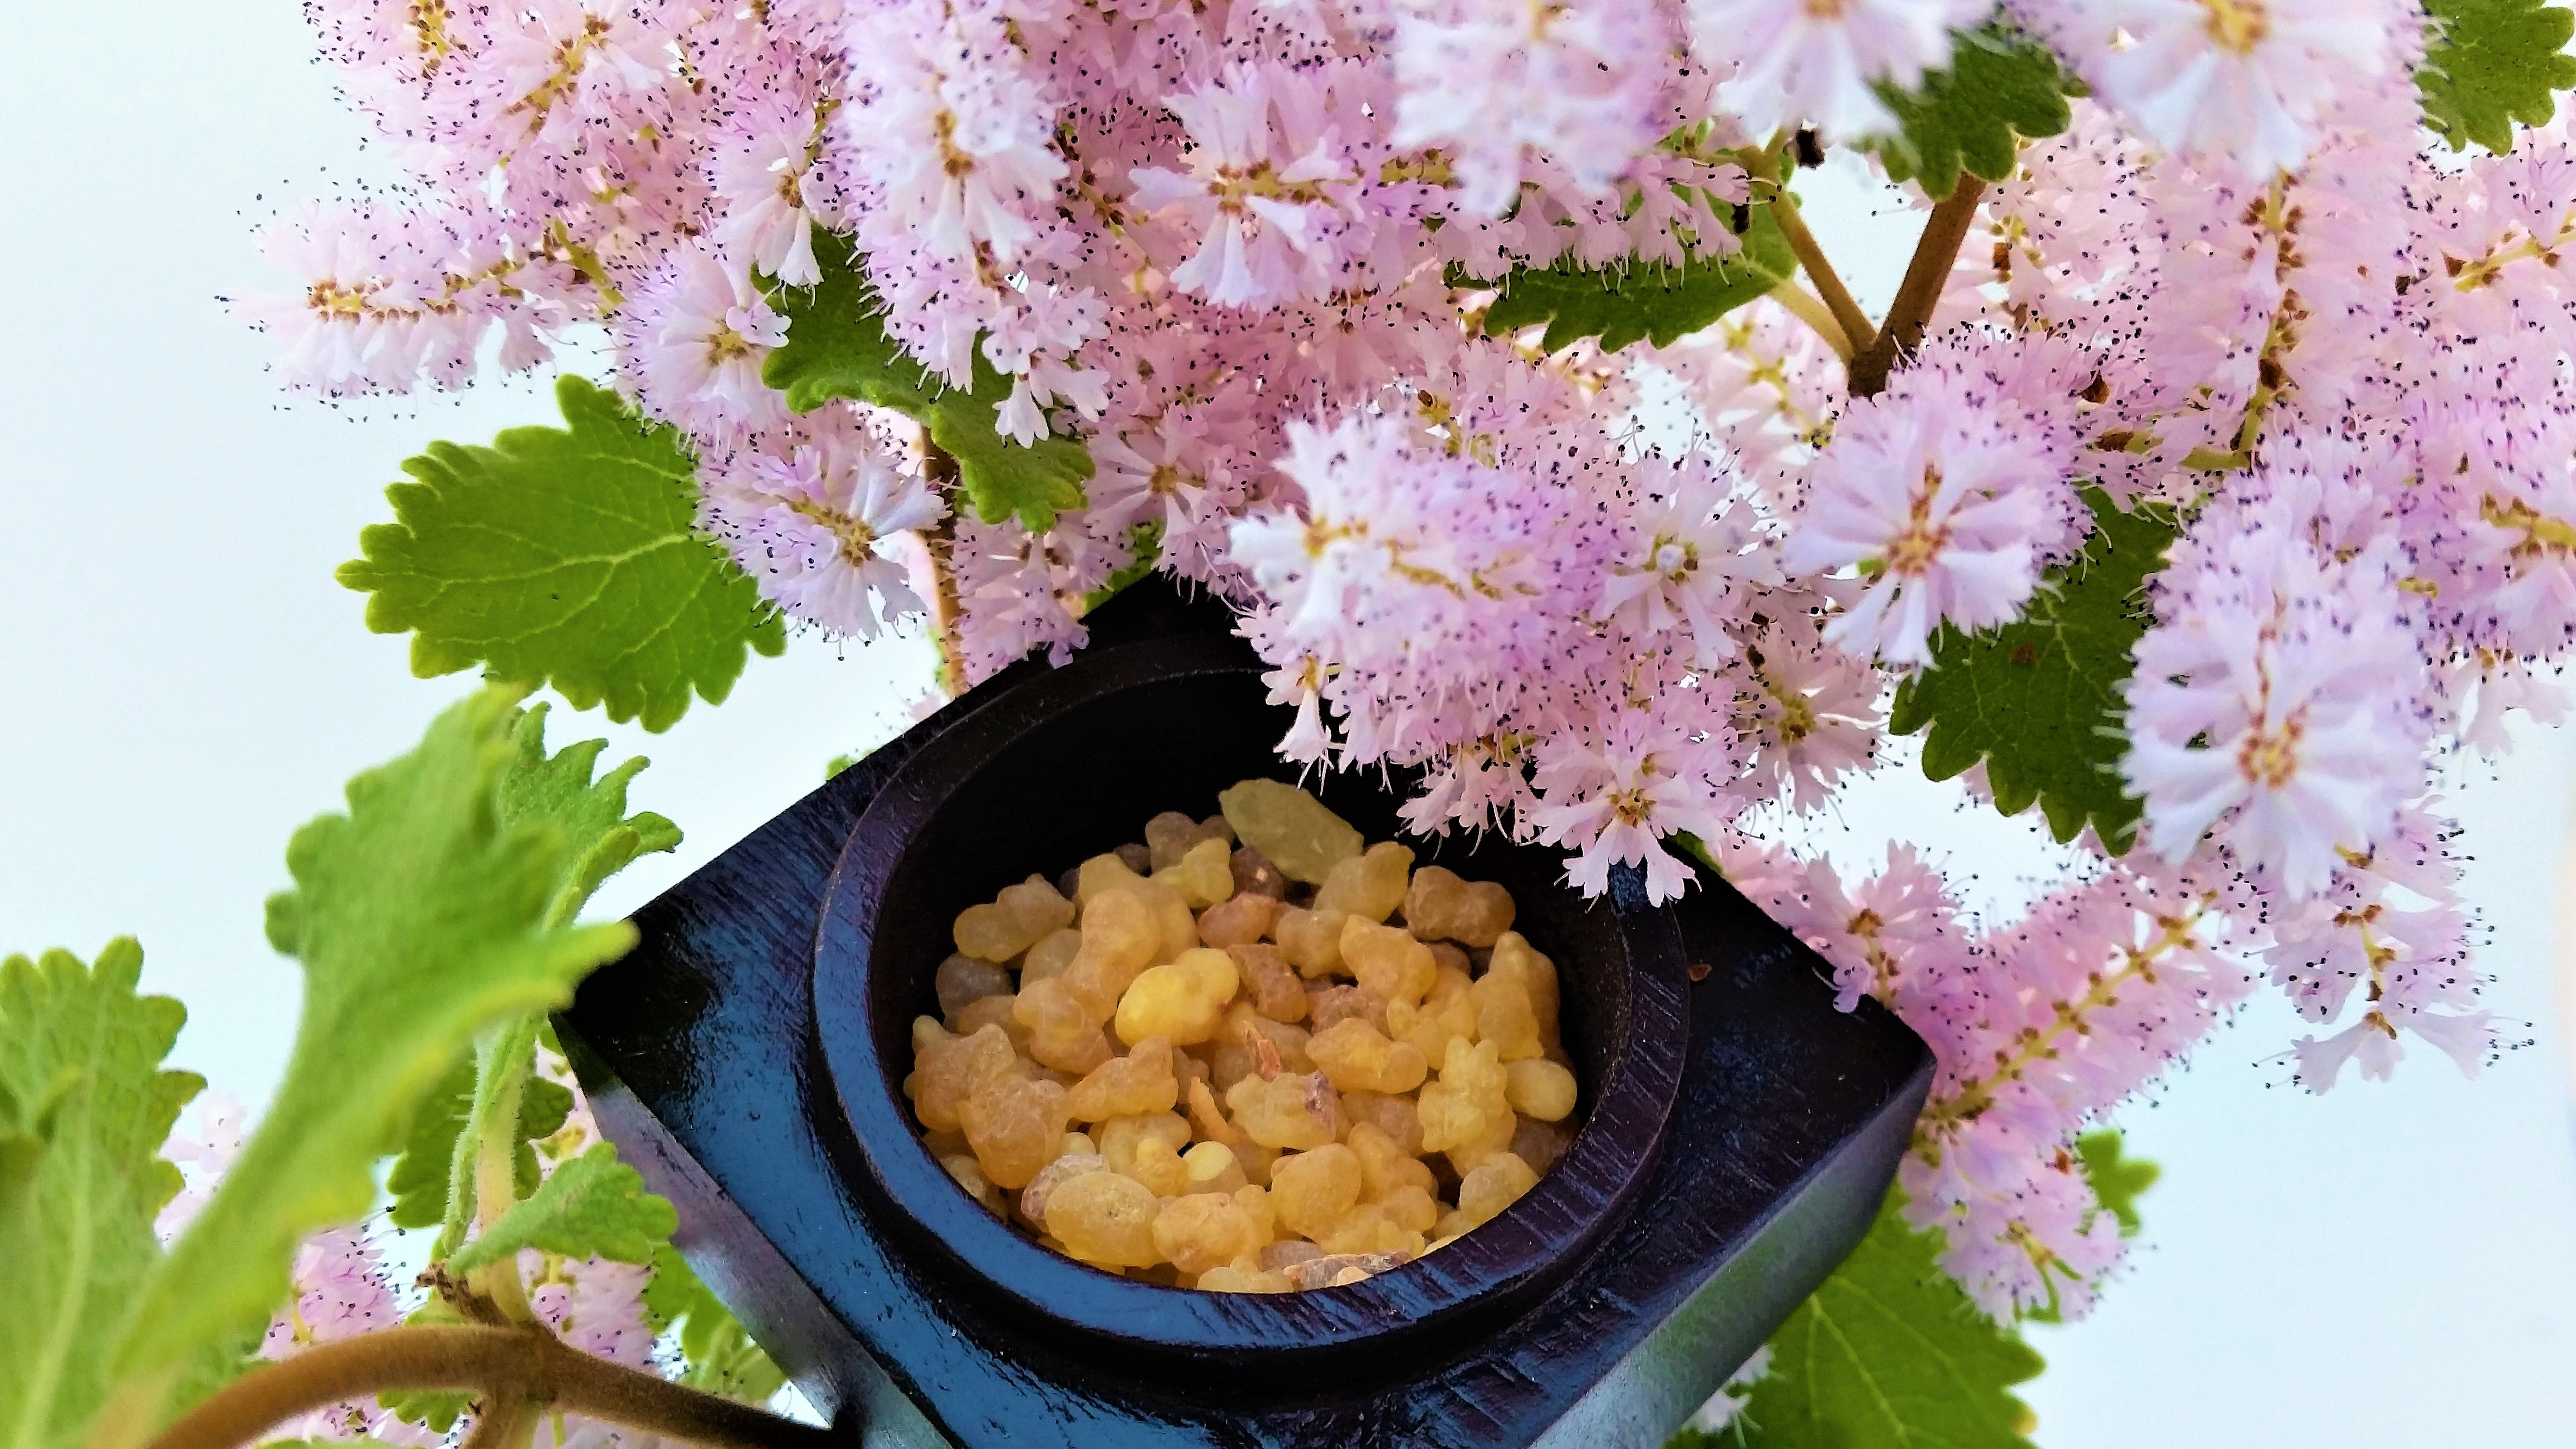 Best quality Olibanum oil including Frankincense Serrata, Boswellia Serrata, Indian Frankincense Oil, 100% Pure & Natural Olibanum Absolute, Frankincense which is highly terpenic and is used to help Rose Accords to achieve natural top note.